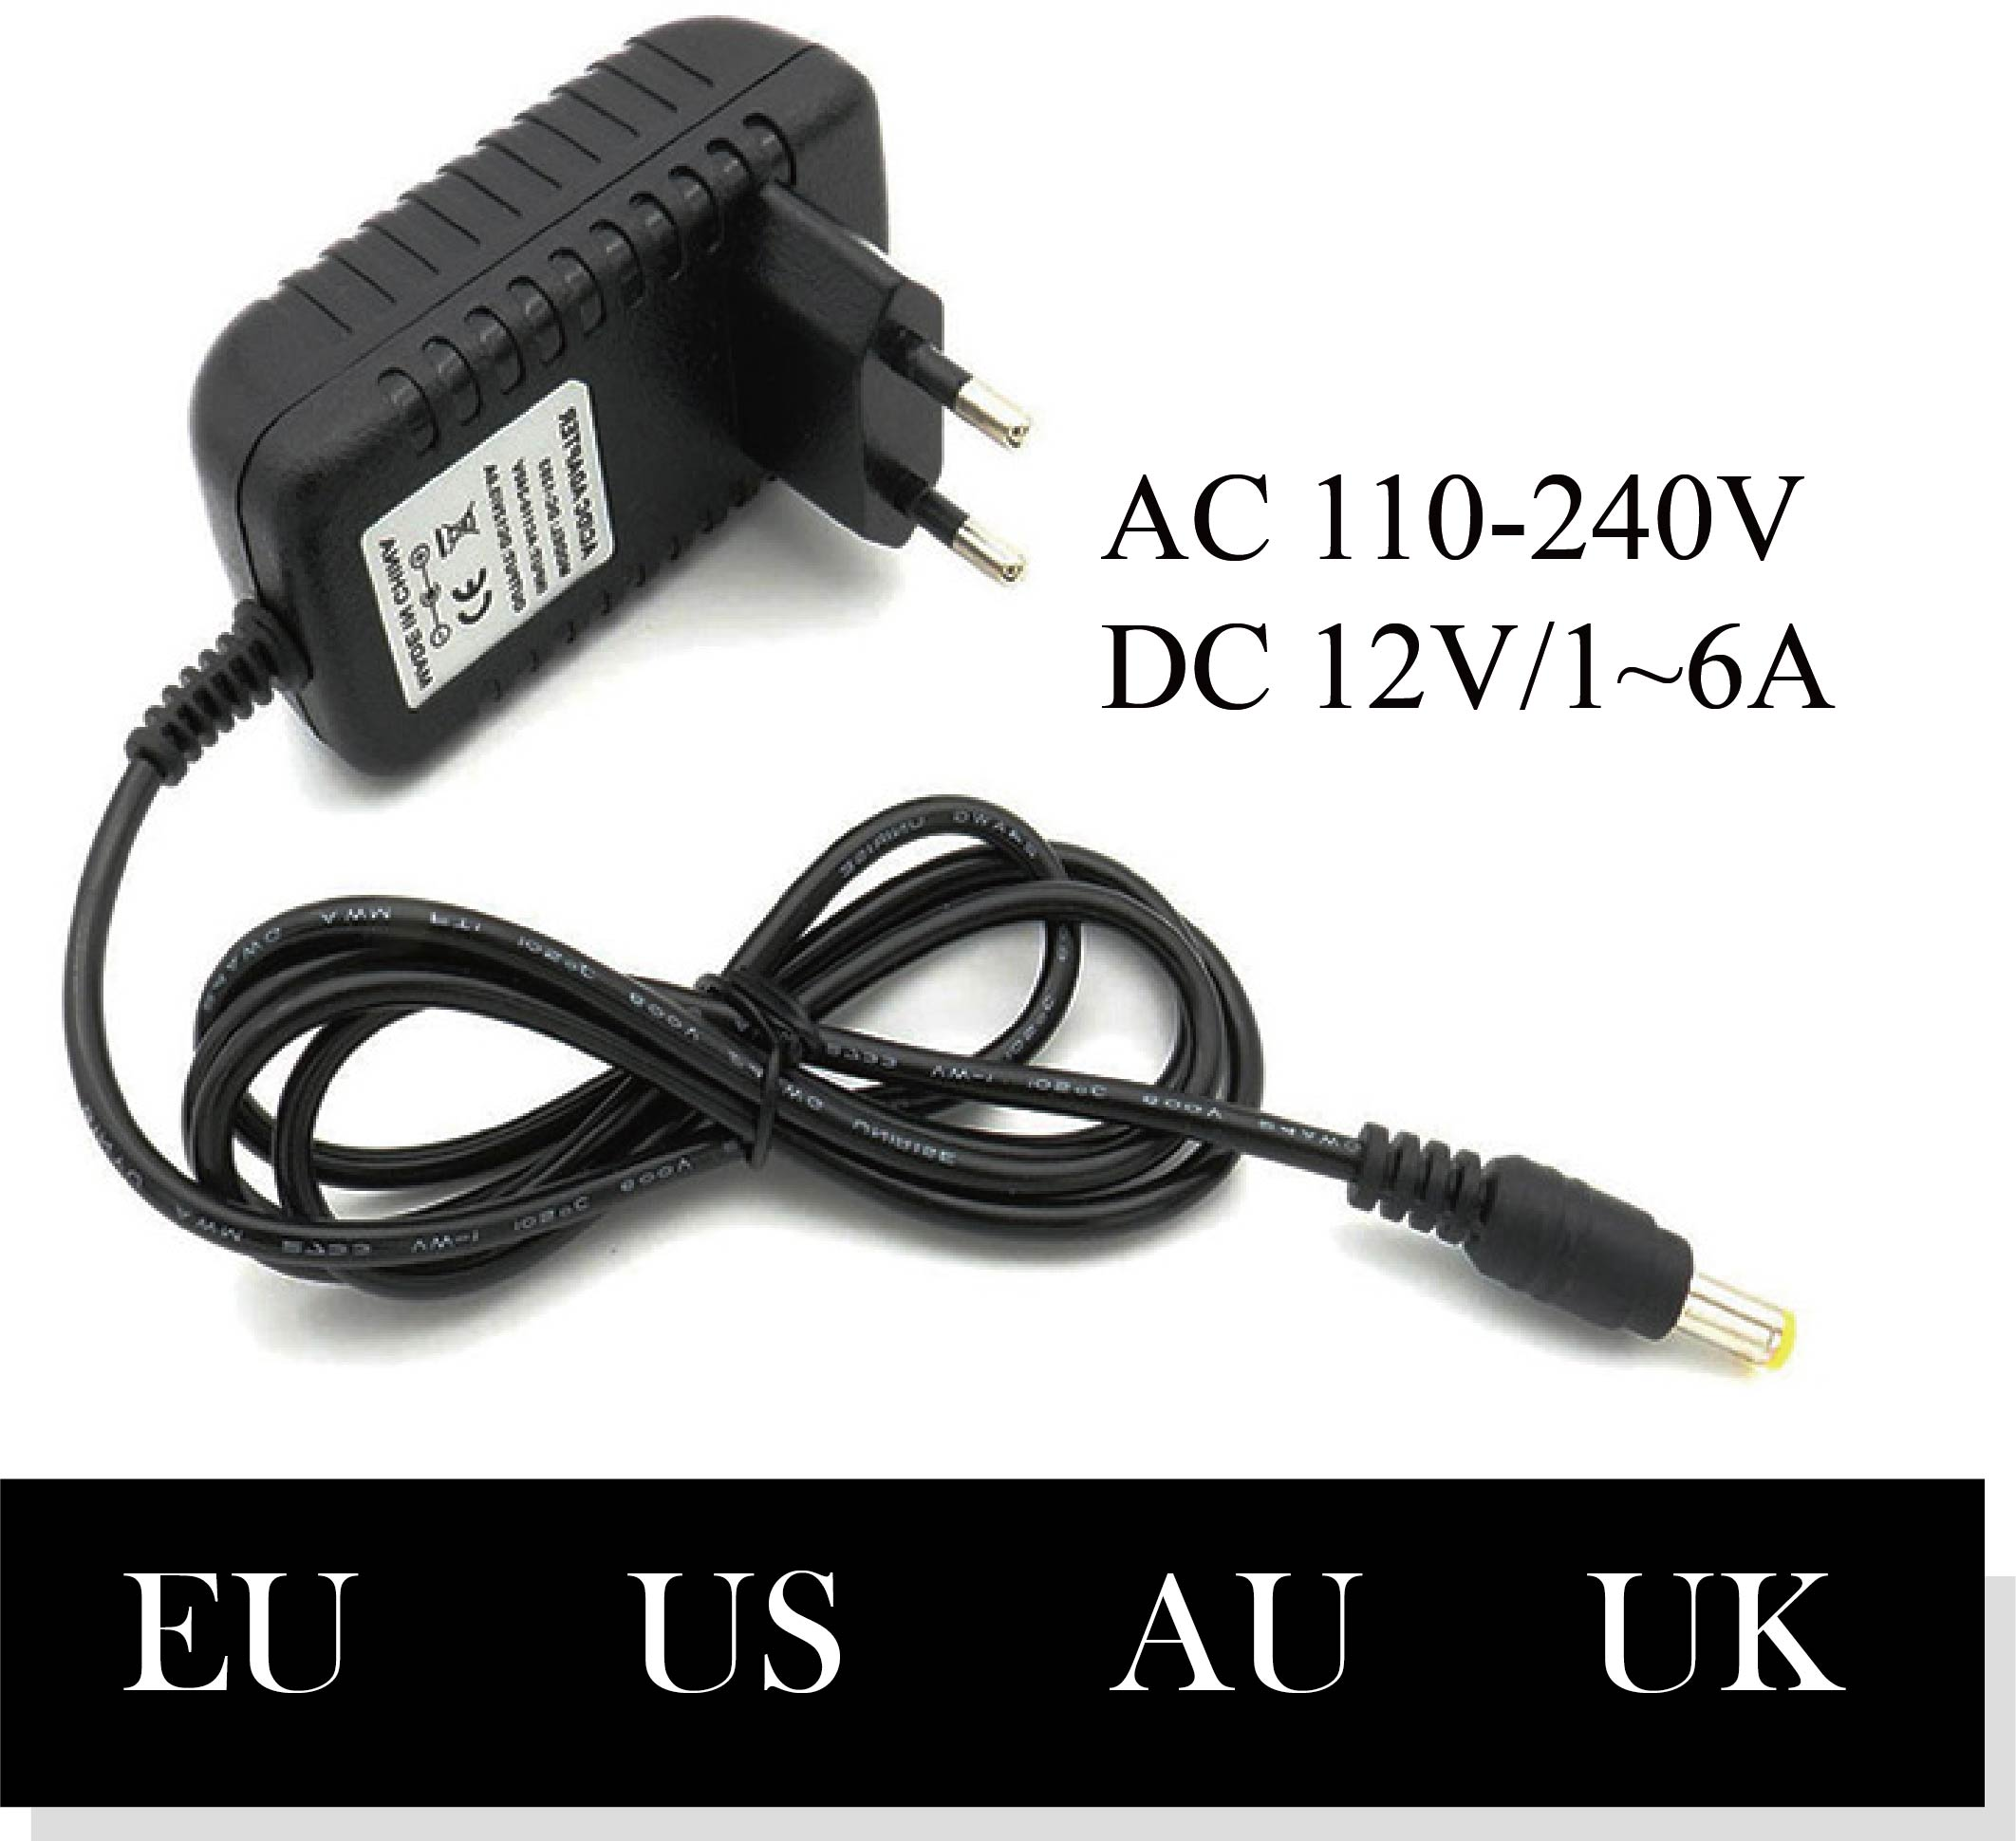 718/5000 110-240V 12V 1A 2A 3A 4A 5A 6A AC to DC adapter Universal power adapter charger LED light strip plug image